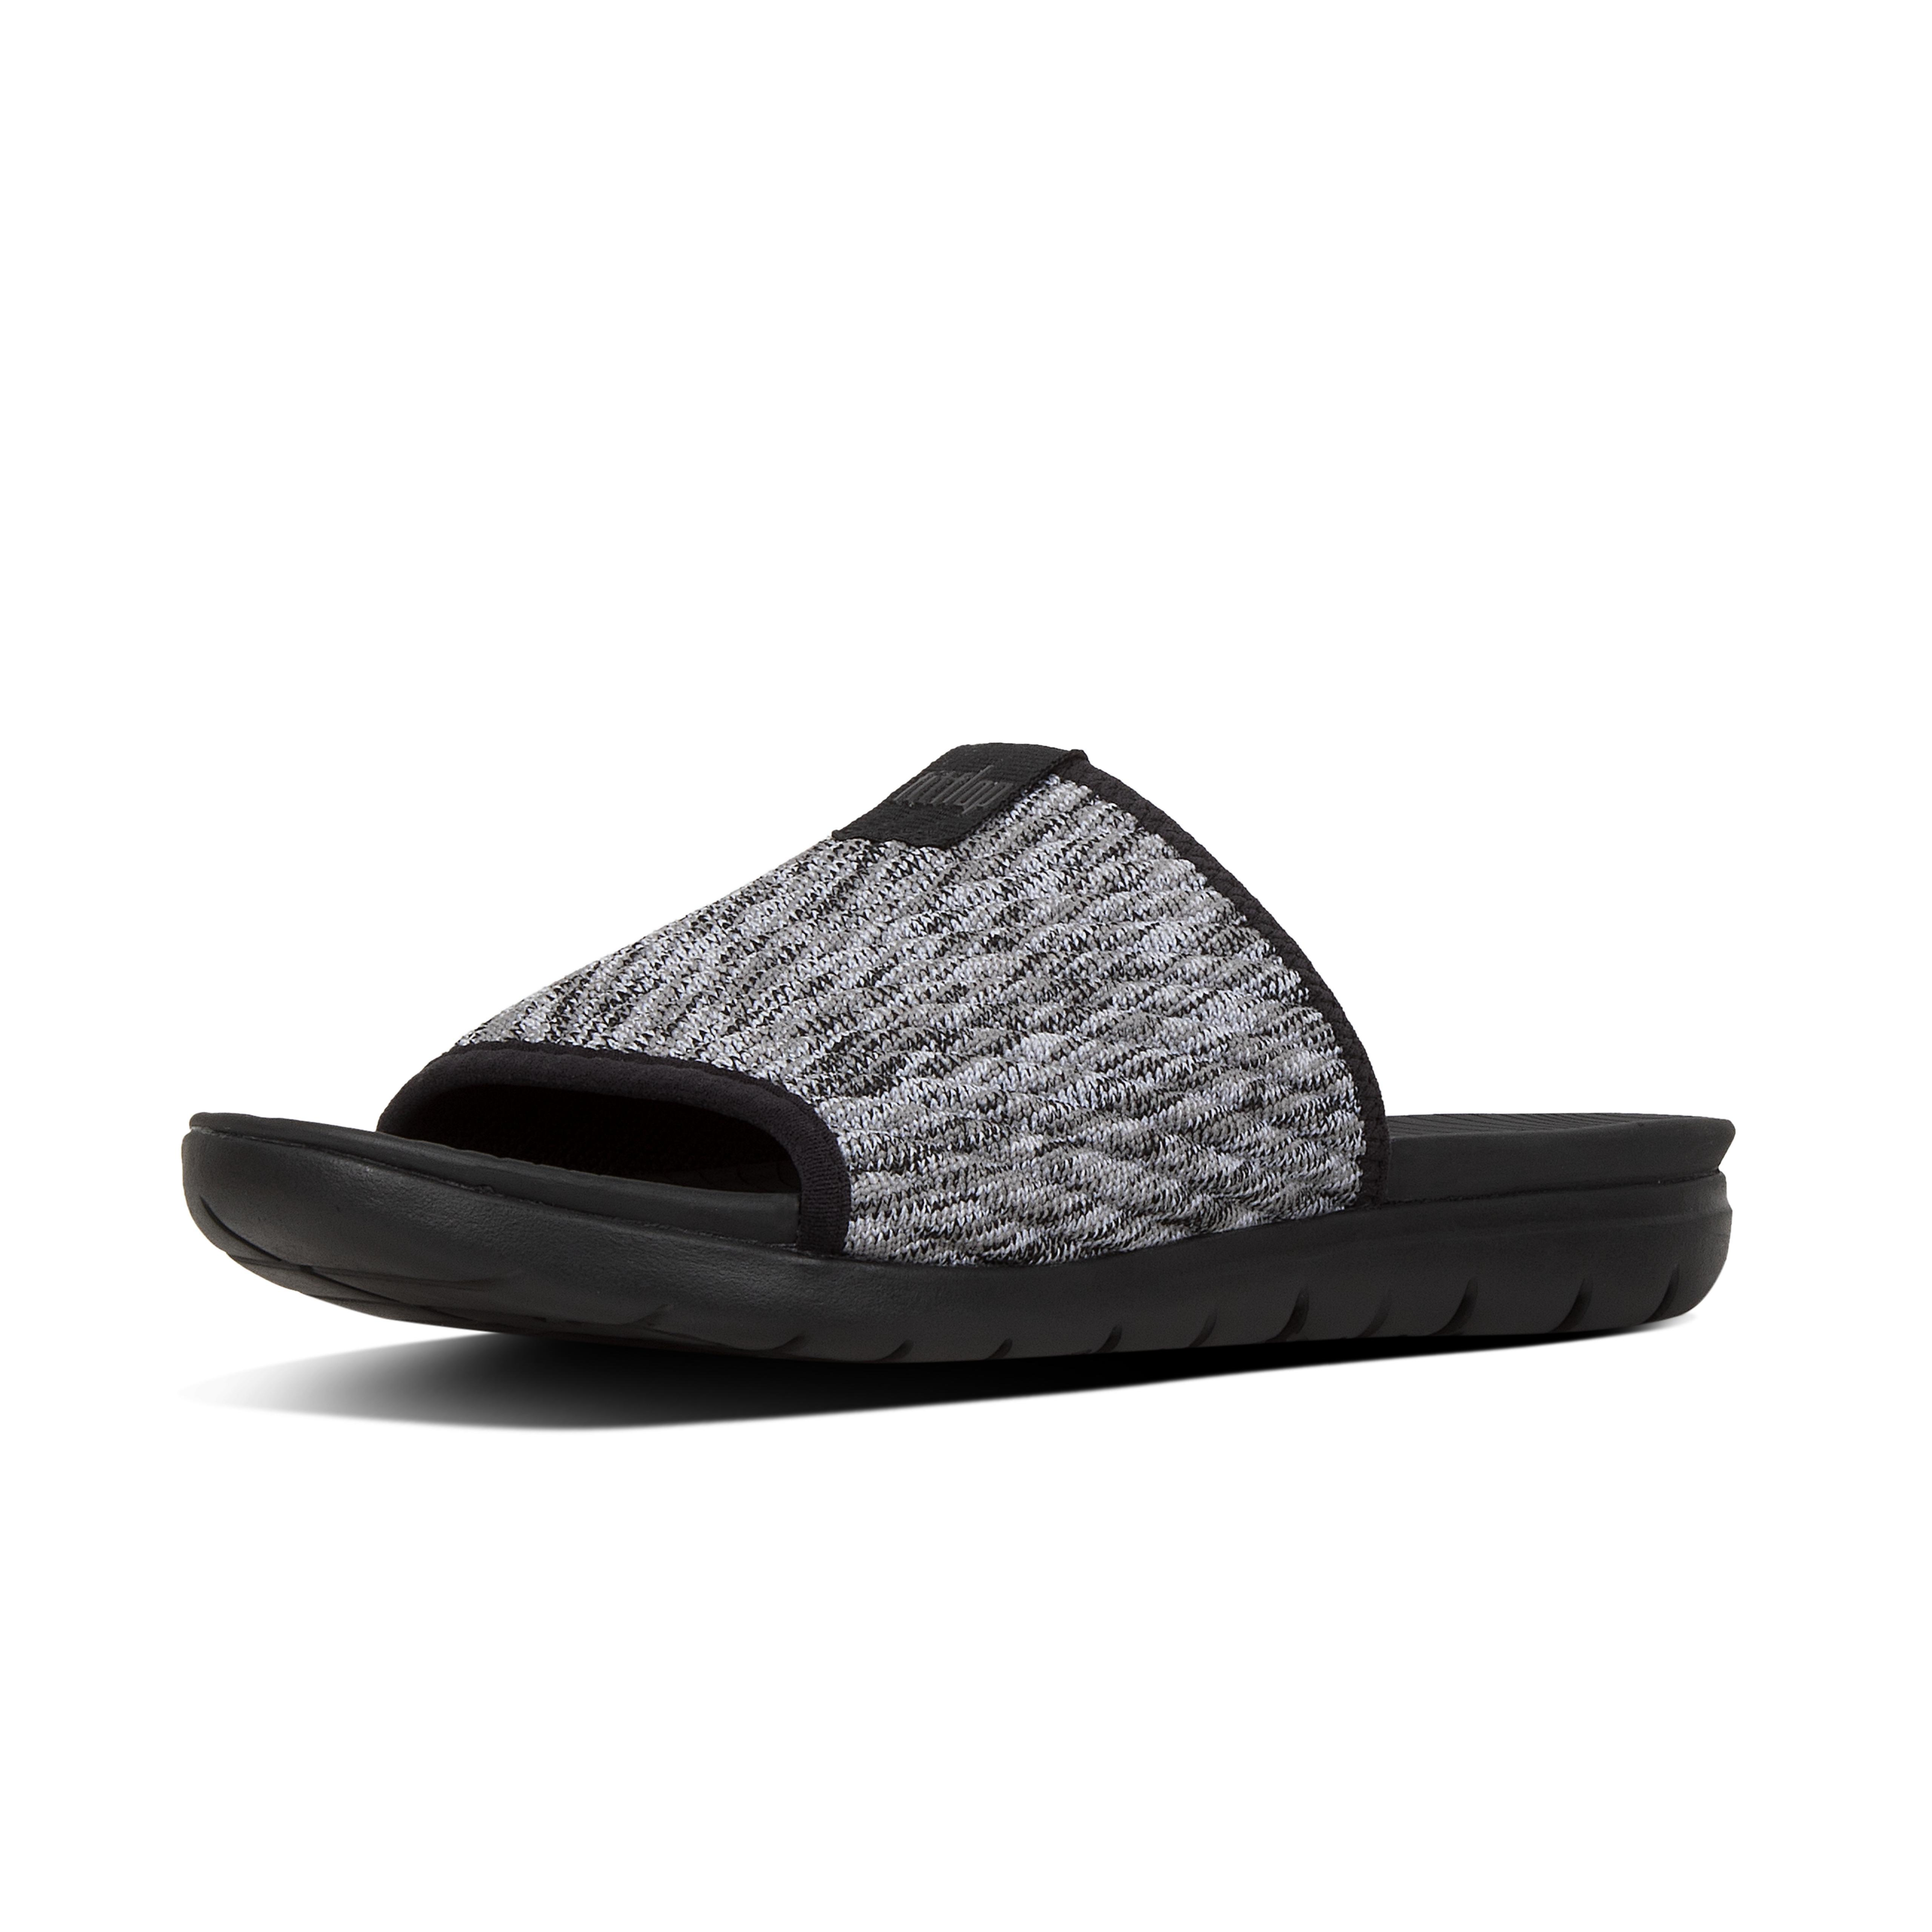 332d2a2f2b Fitflop Artknit Slide (black Mix) Shoes in Black - Save 49% - Lyst